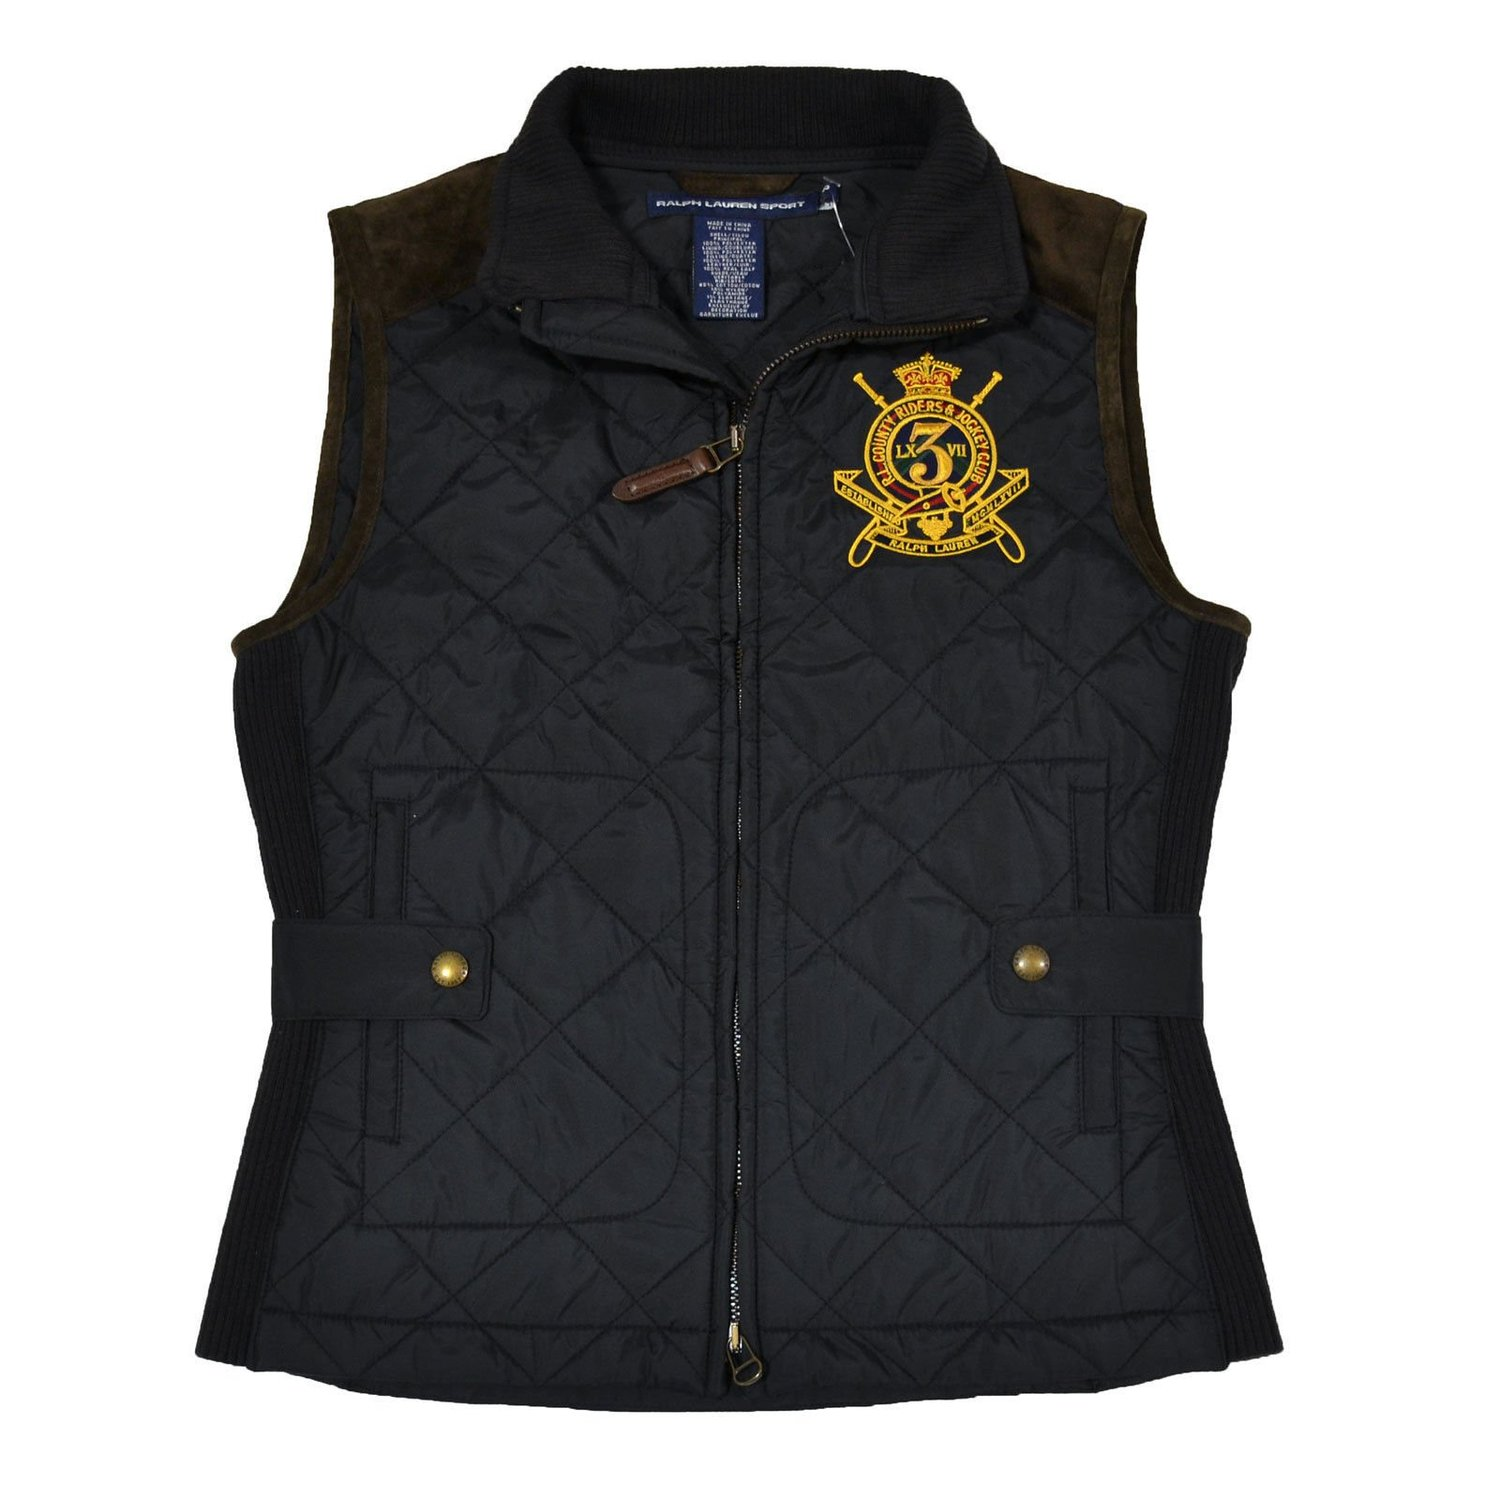 Ralph Lauren Outlet UK, Cheap Polo Ralph Lauren Sale Online Store: Women's Vest - Ralph Lauren Men Ralph Lauren Women Ralph Lauren Kids Accessories Hackett.